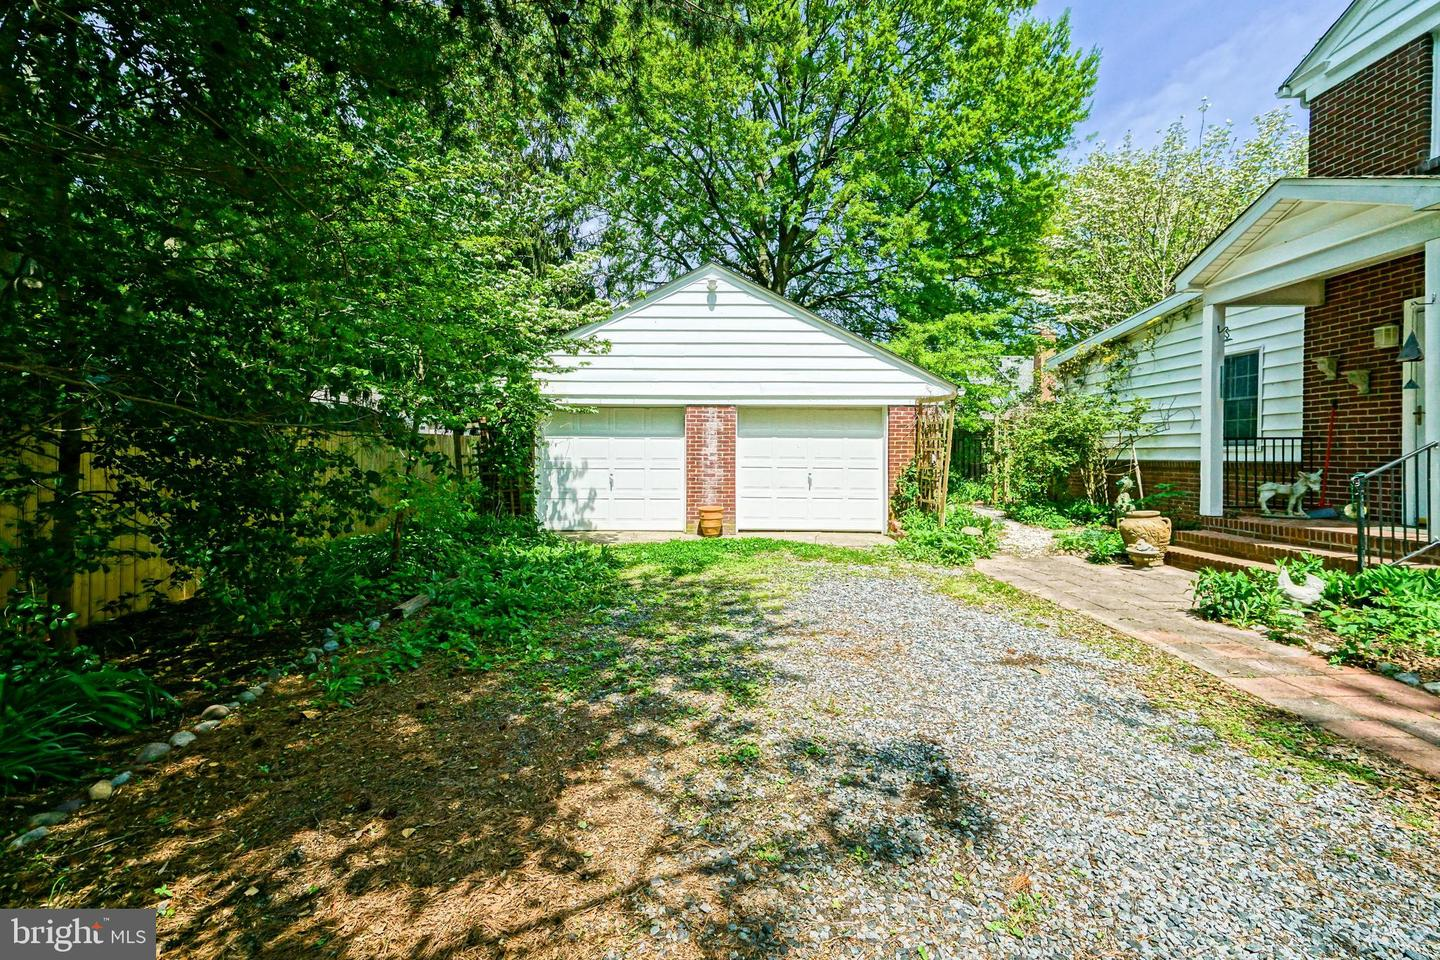 DESU139300-301676345447-2019-07-11-10-36-20 59 Devries Cir | Lewes, DE Real Estate For Sale | MLS# Desu139300  - Lee Ann Group